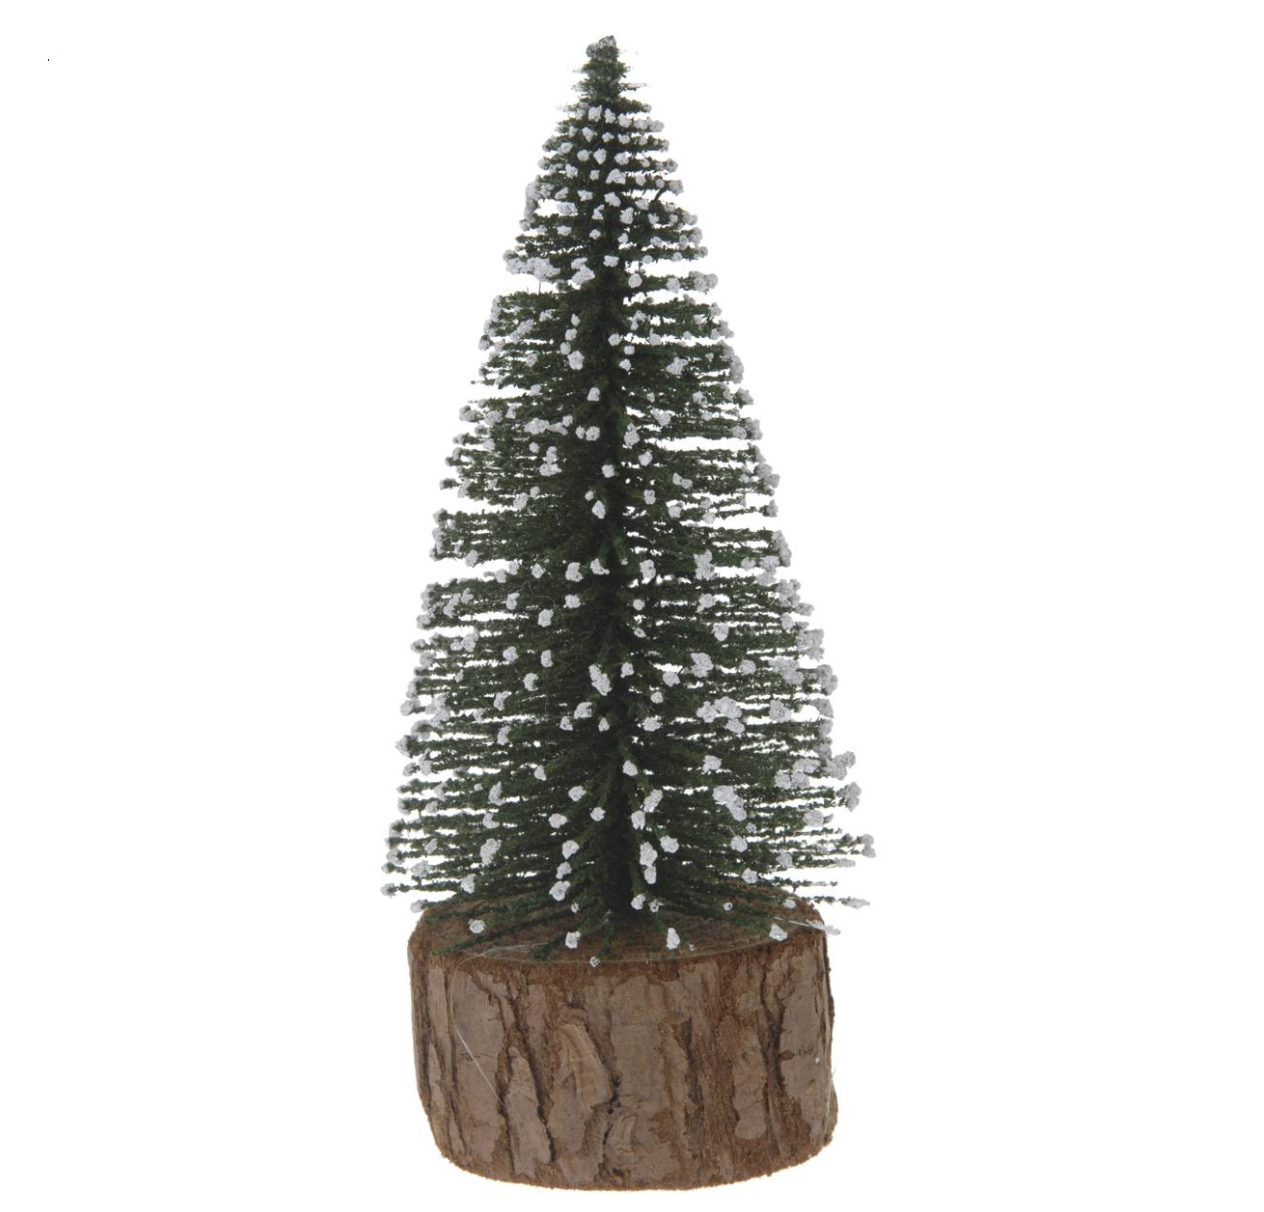 Brush christmas tree